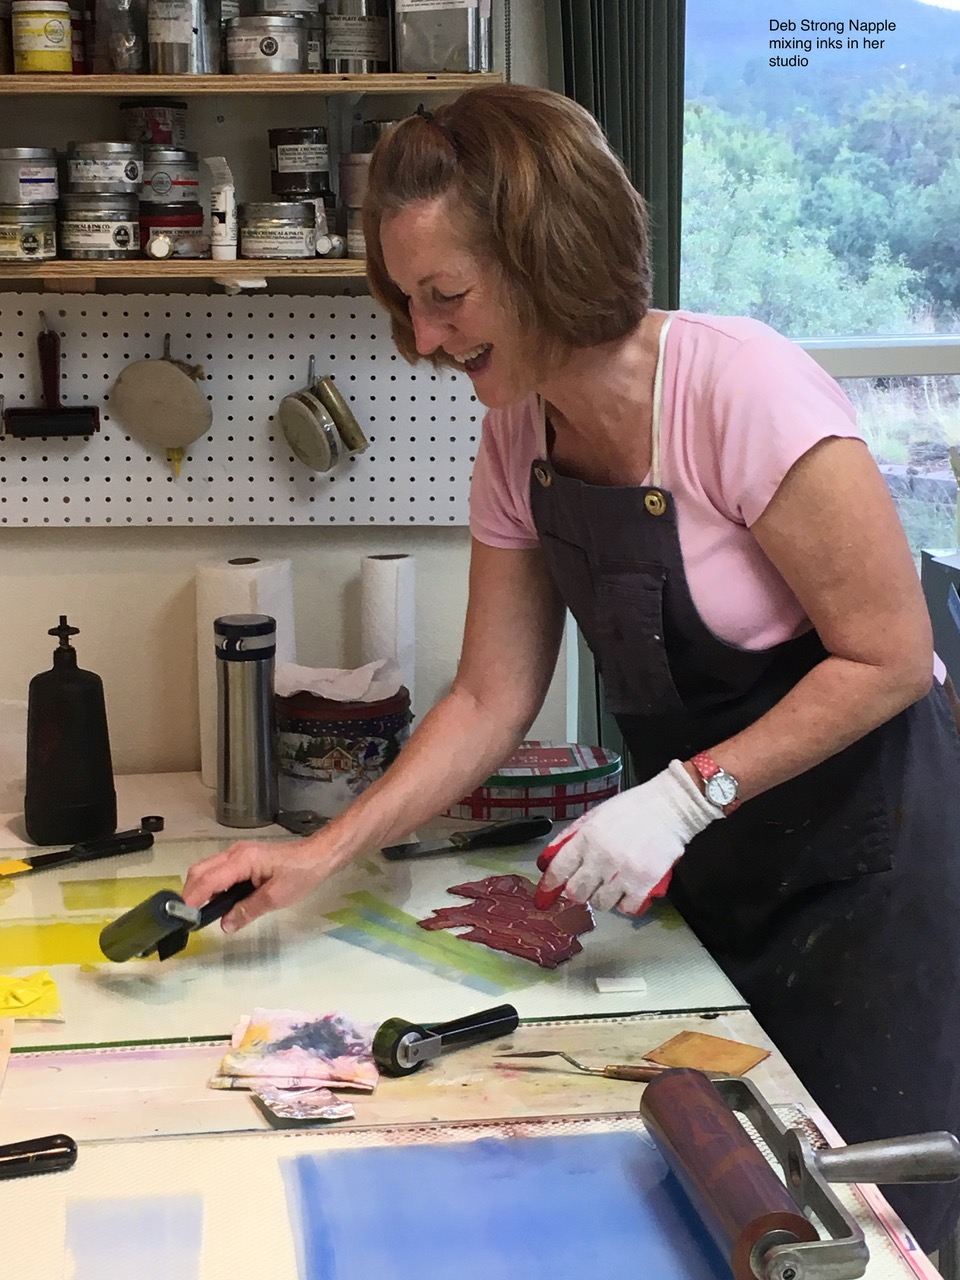 Deb Strong Napple working in her studio